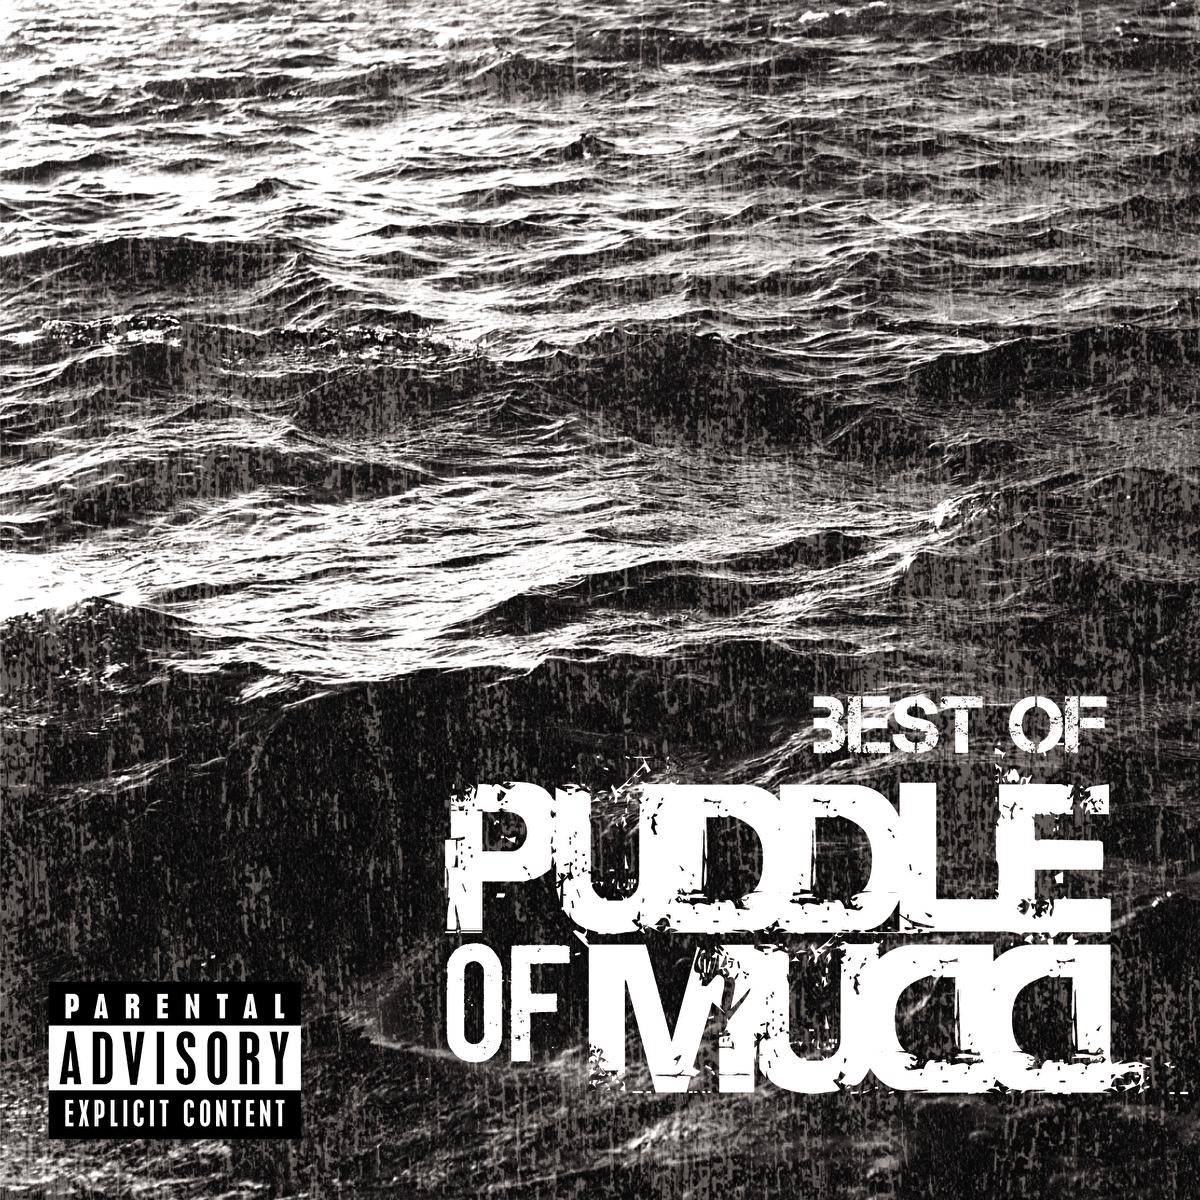 Best of Puddle of Mudd